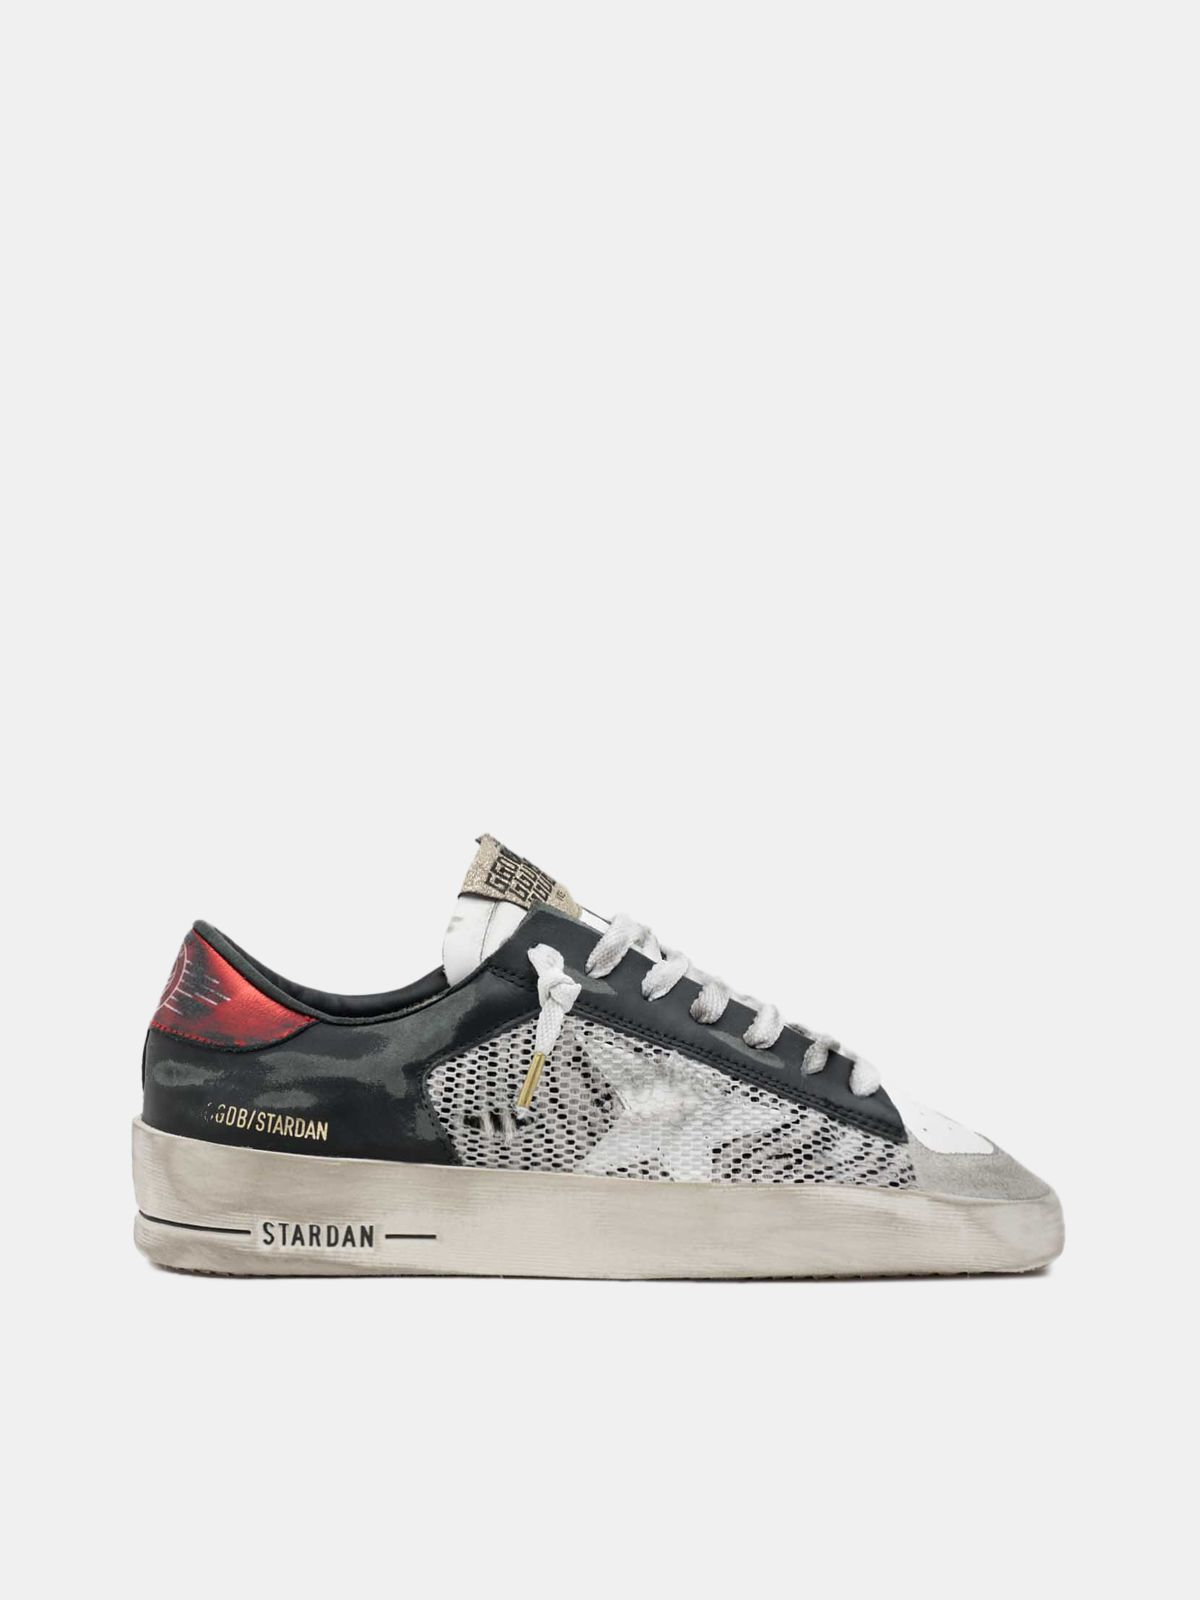 Golden Goose - Stardan sneakers with zebra-print pony skin detail in